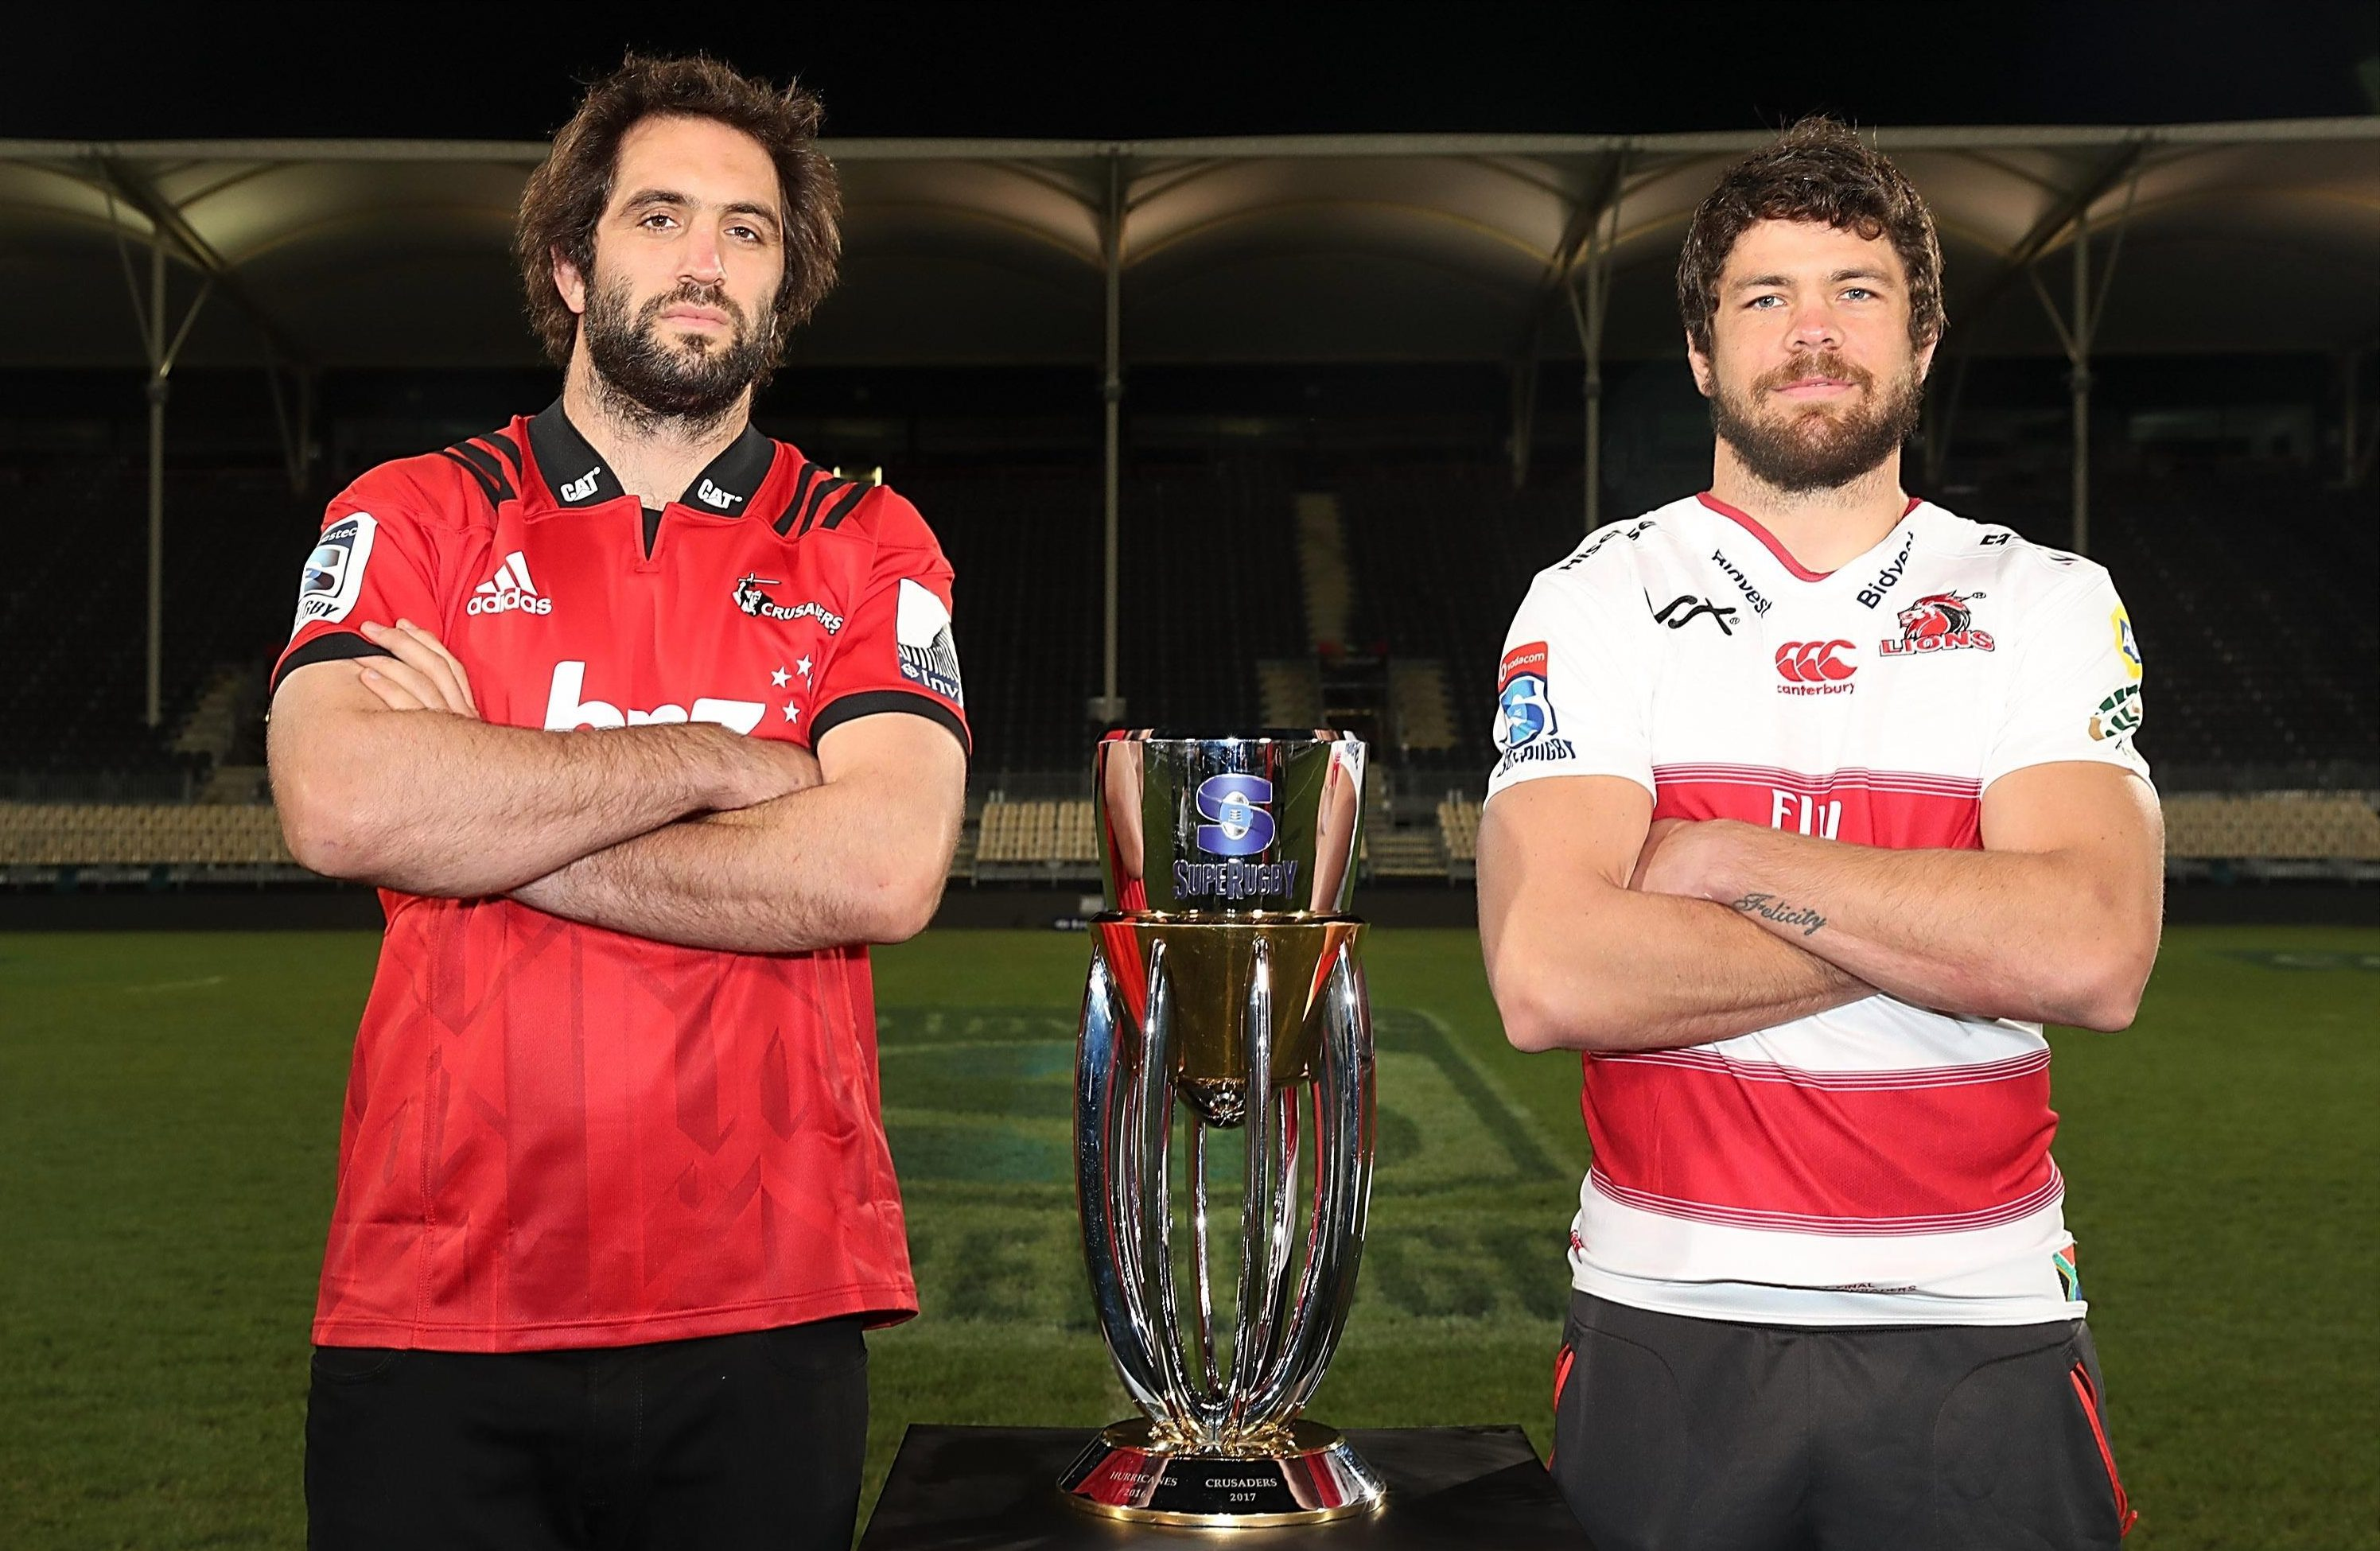 The Crusaders hope to win Super Rugby for the ninth time while the Lions are looking for a maiden victory